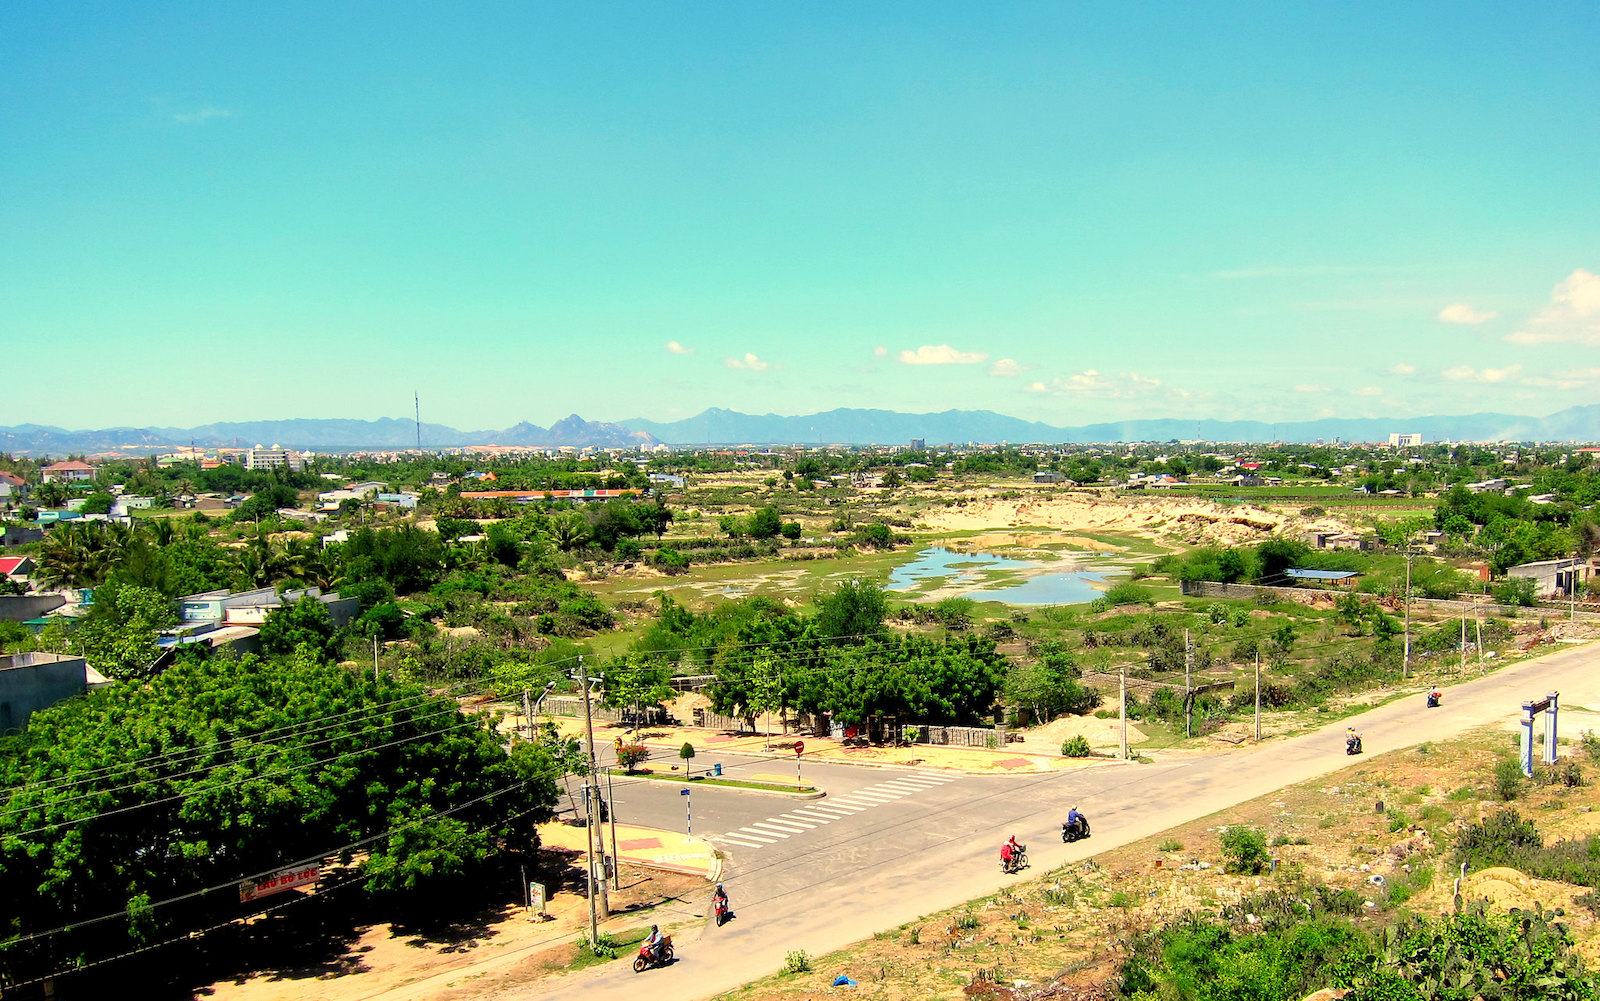 Image of the town of Phan Rang in Vietnam